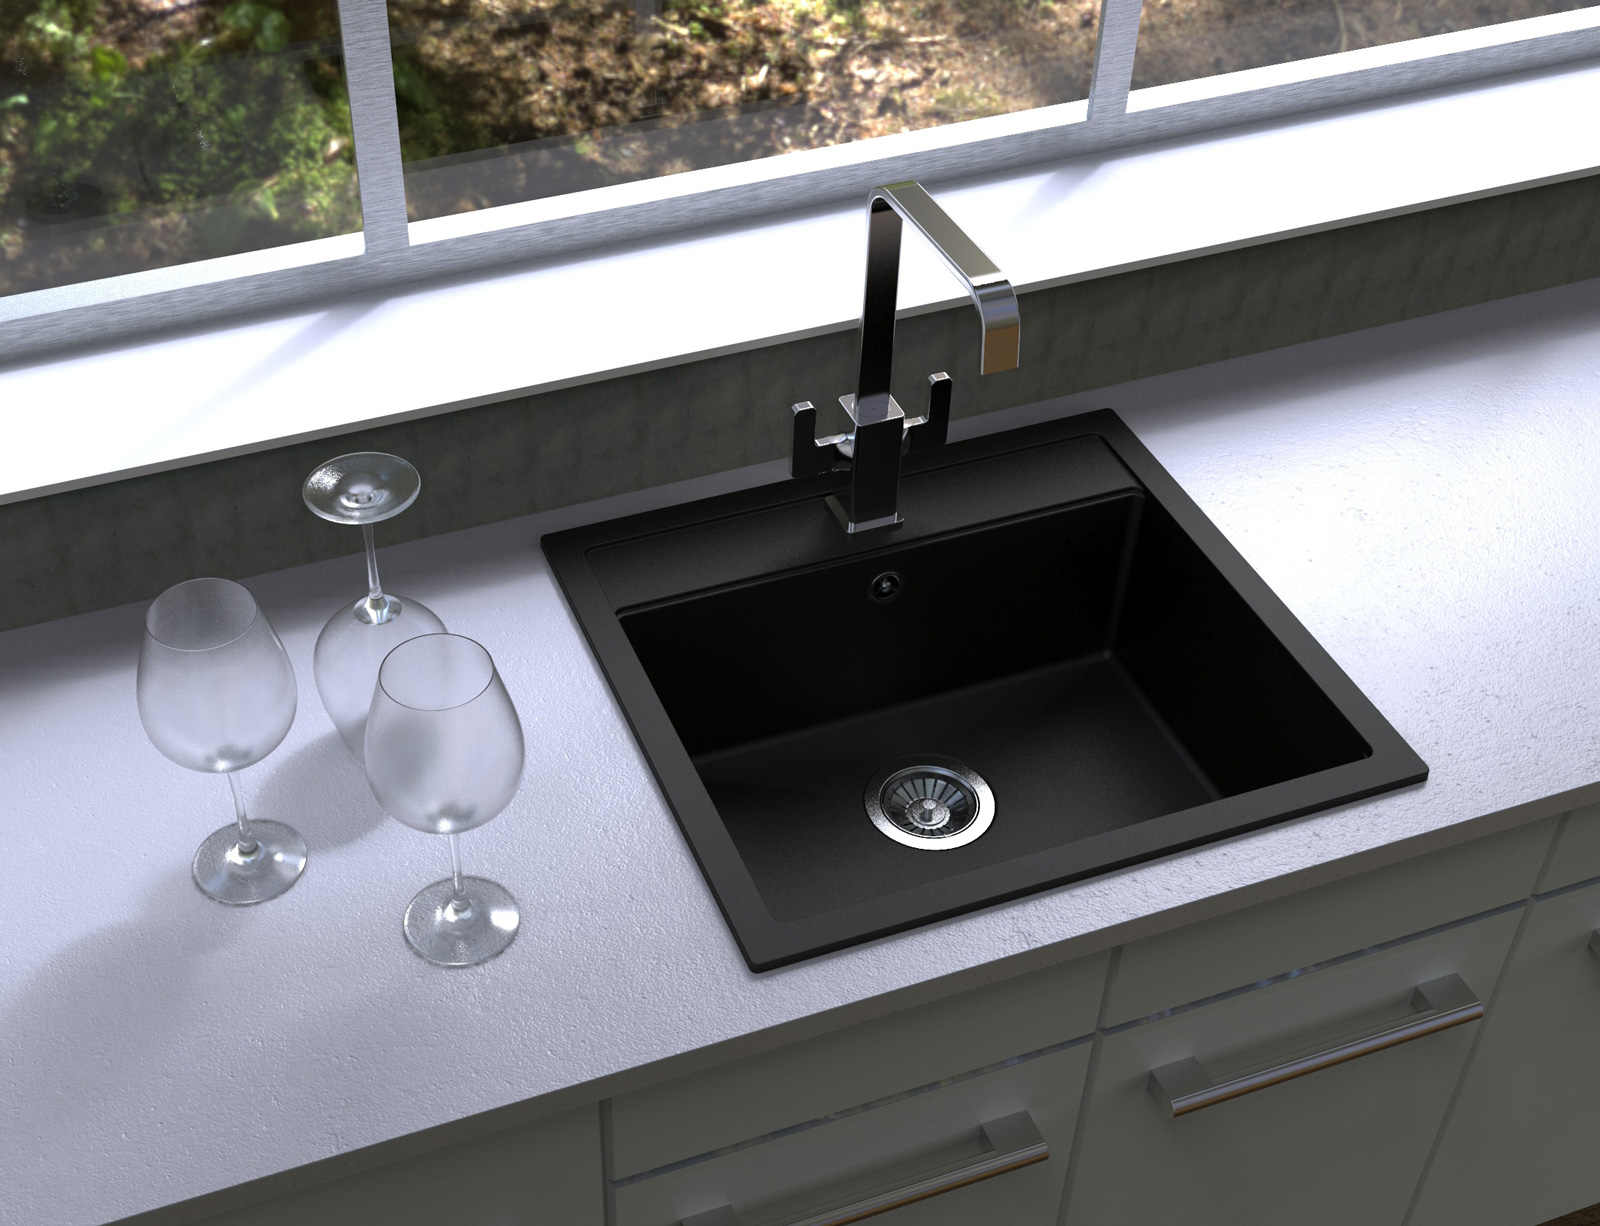 Sinks SOLO 560 Metalblack